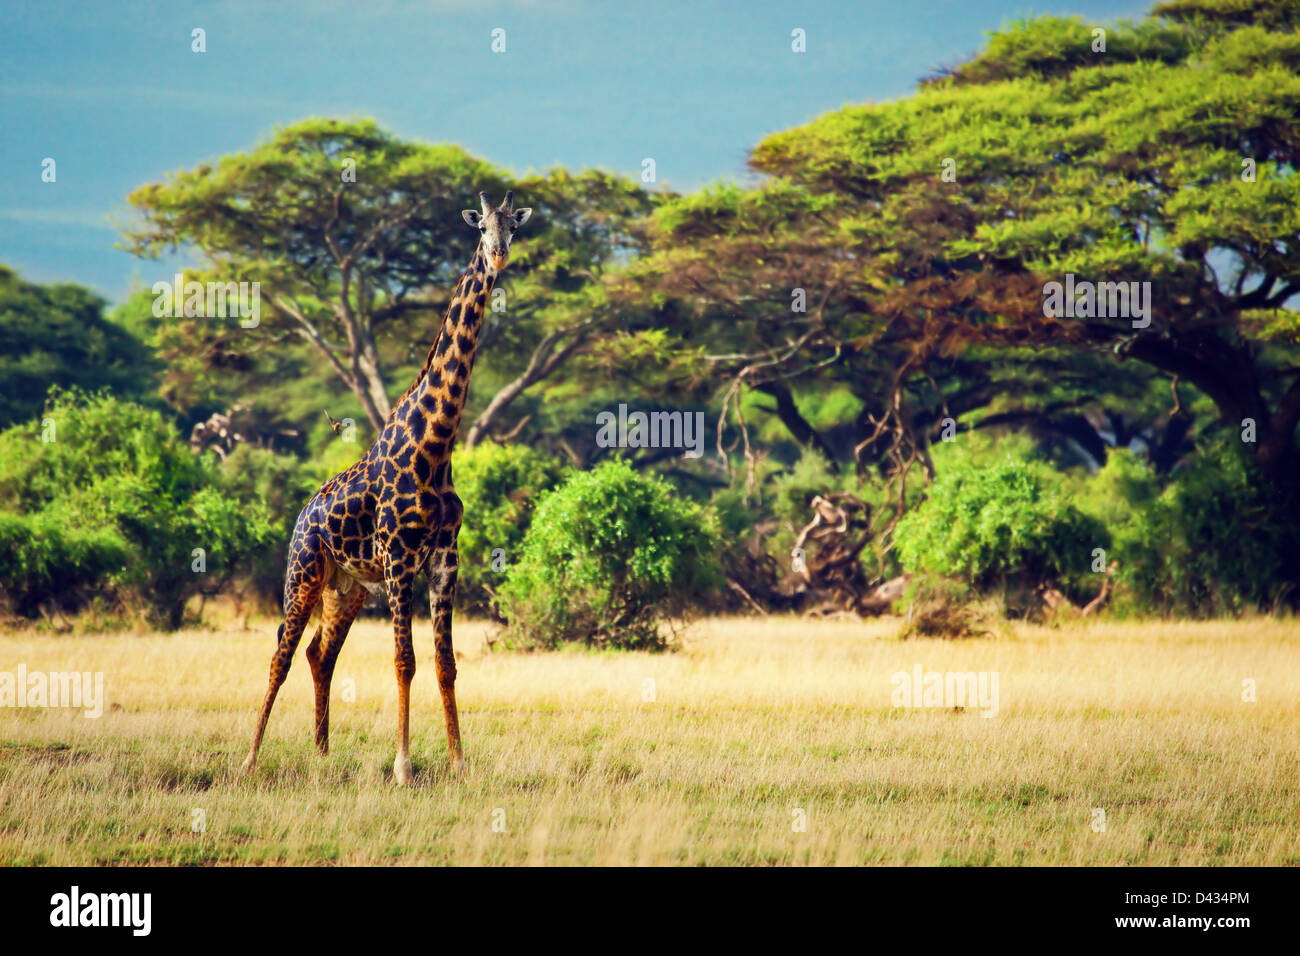 Single giraffe on savanna. Safari in Amboseli, Kenya, Africa - Stock Image